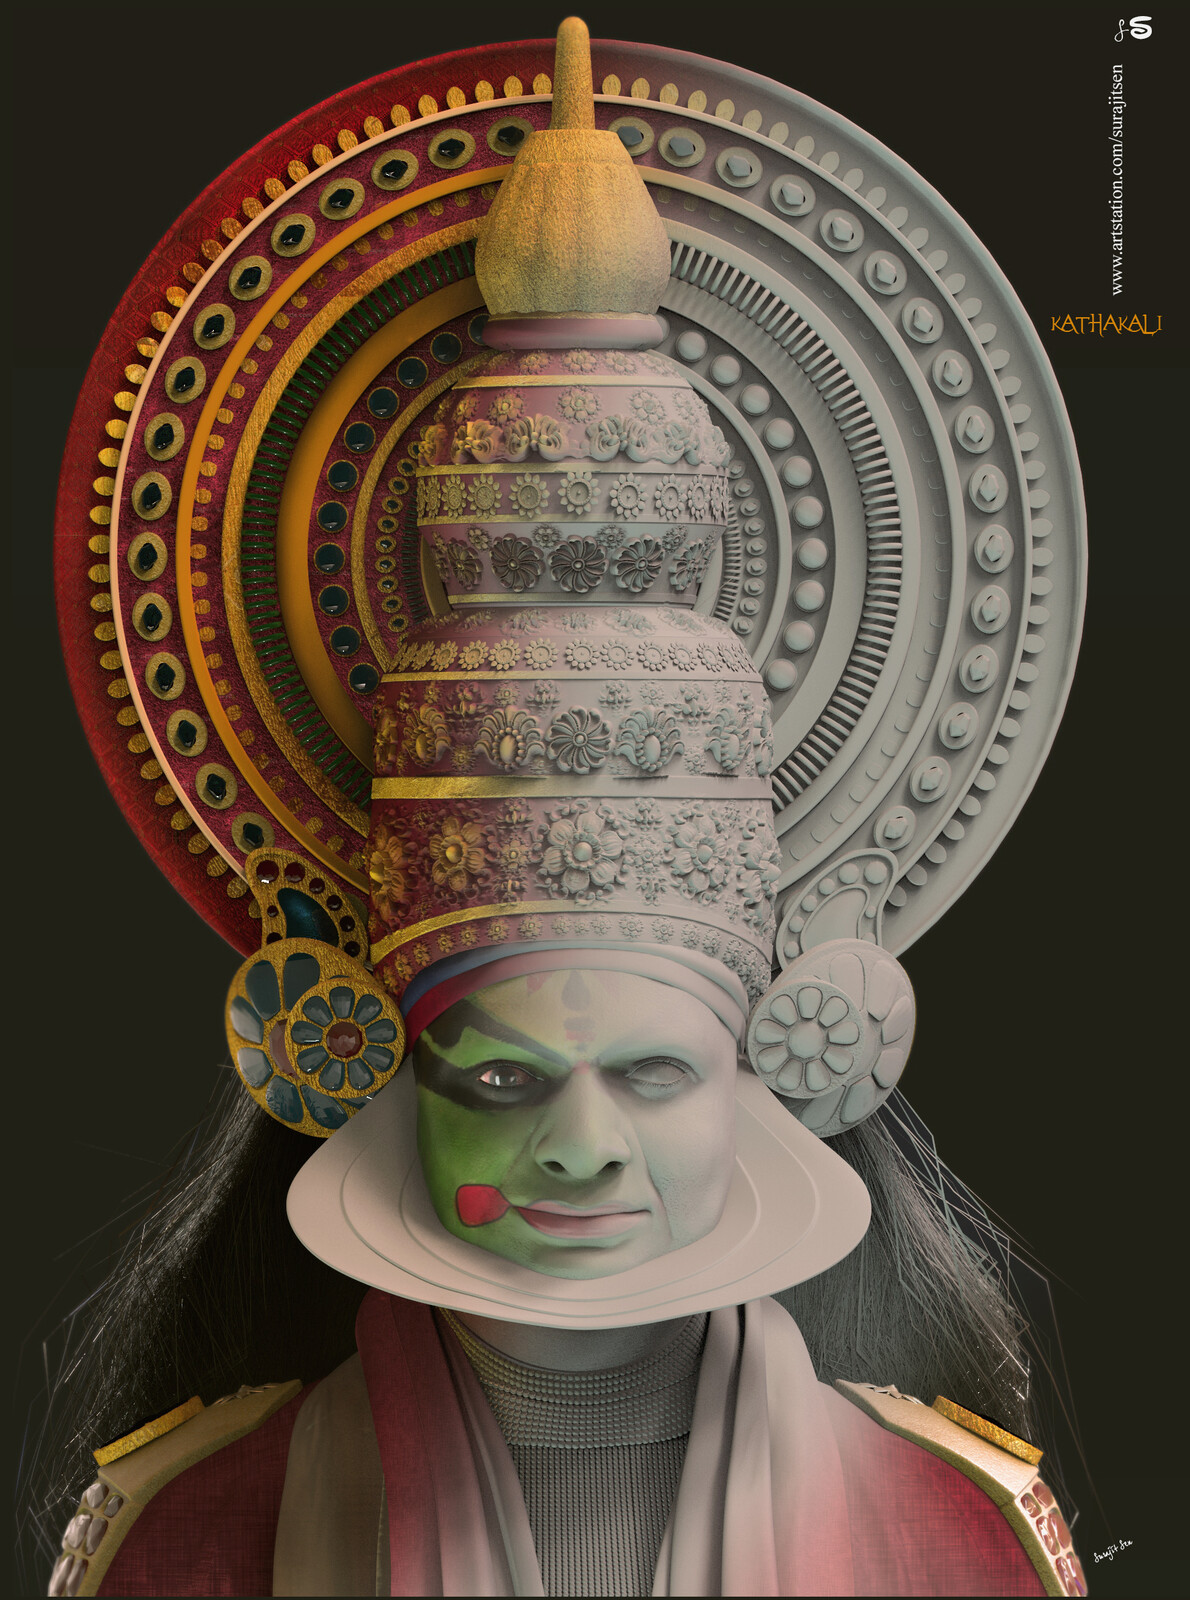 Kathakali-The art of Indian Dance (In Kerala)-CG Character  Modeled / Sculpted in Maya / ZBrush The texture was painted in Substance Painter Rendered in Arnold Comp-Photoshop Dance is the ultimate expression of human emotion. Kerala's dance traditions da